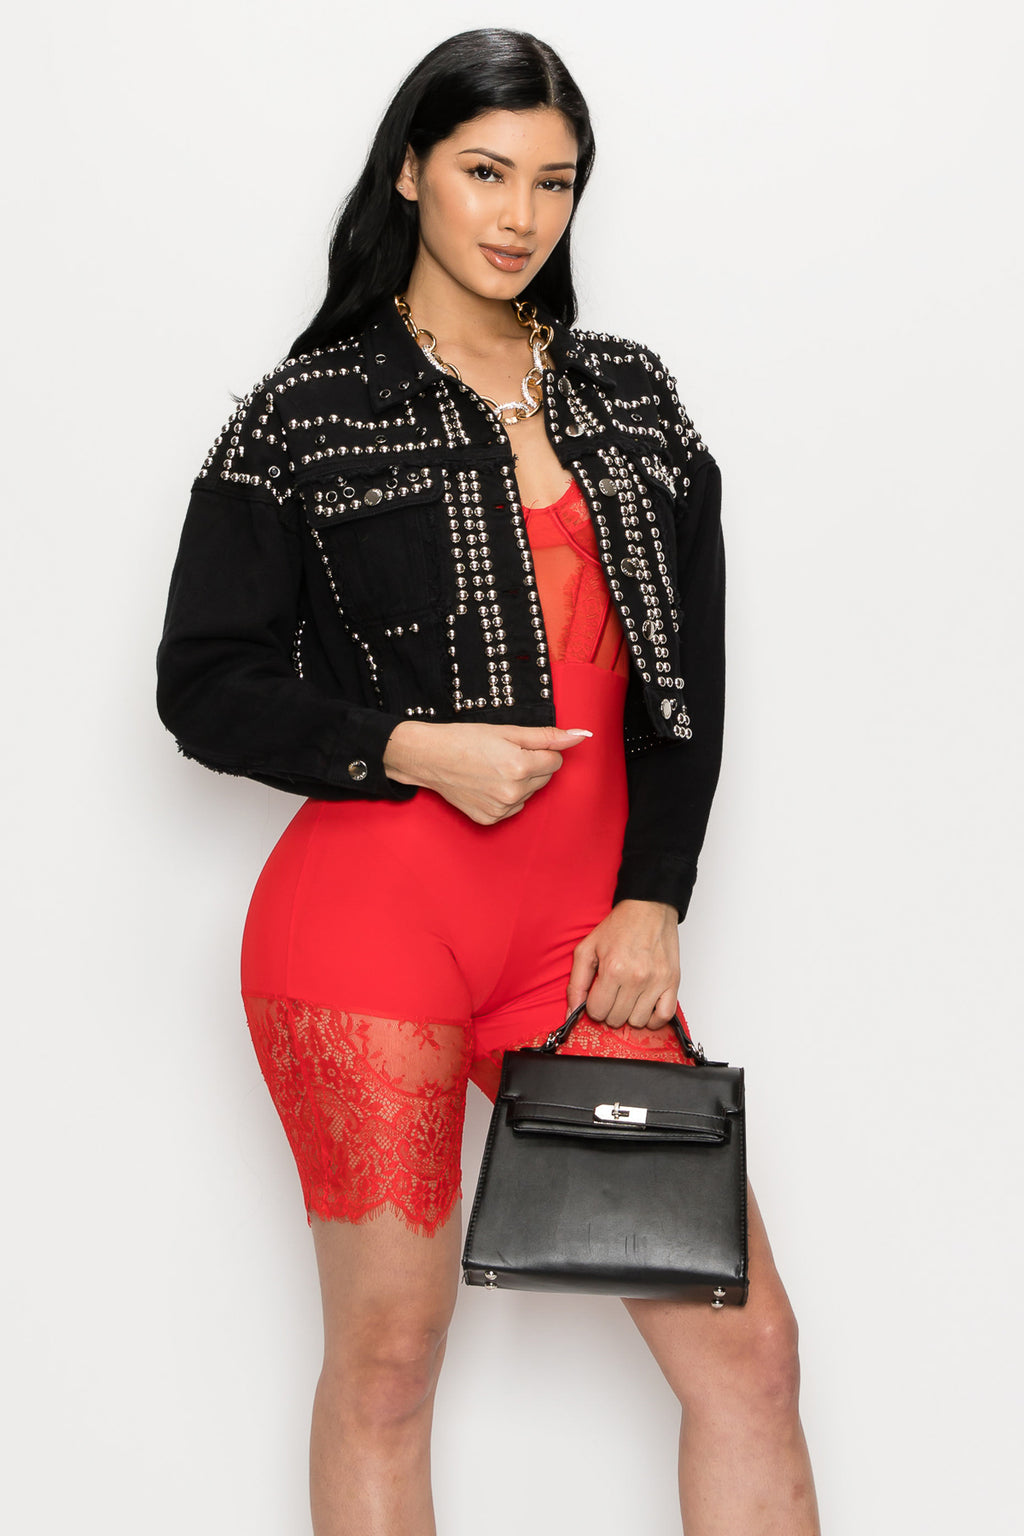 Keep You Stud Jacket-BLACK - Fashion House USA